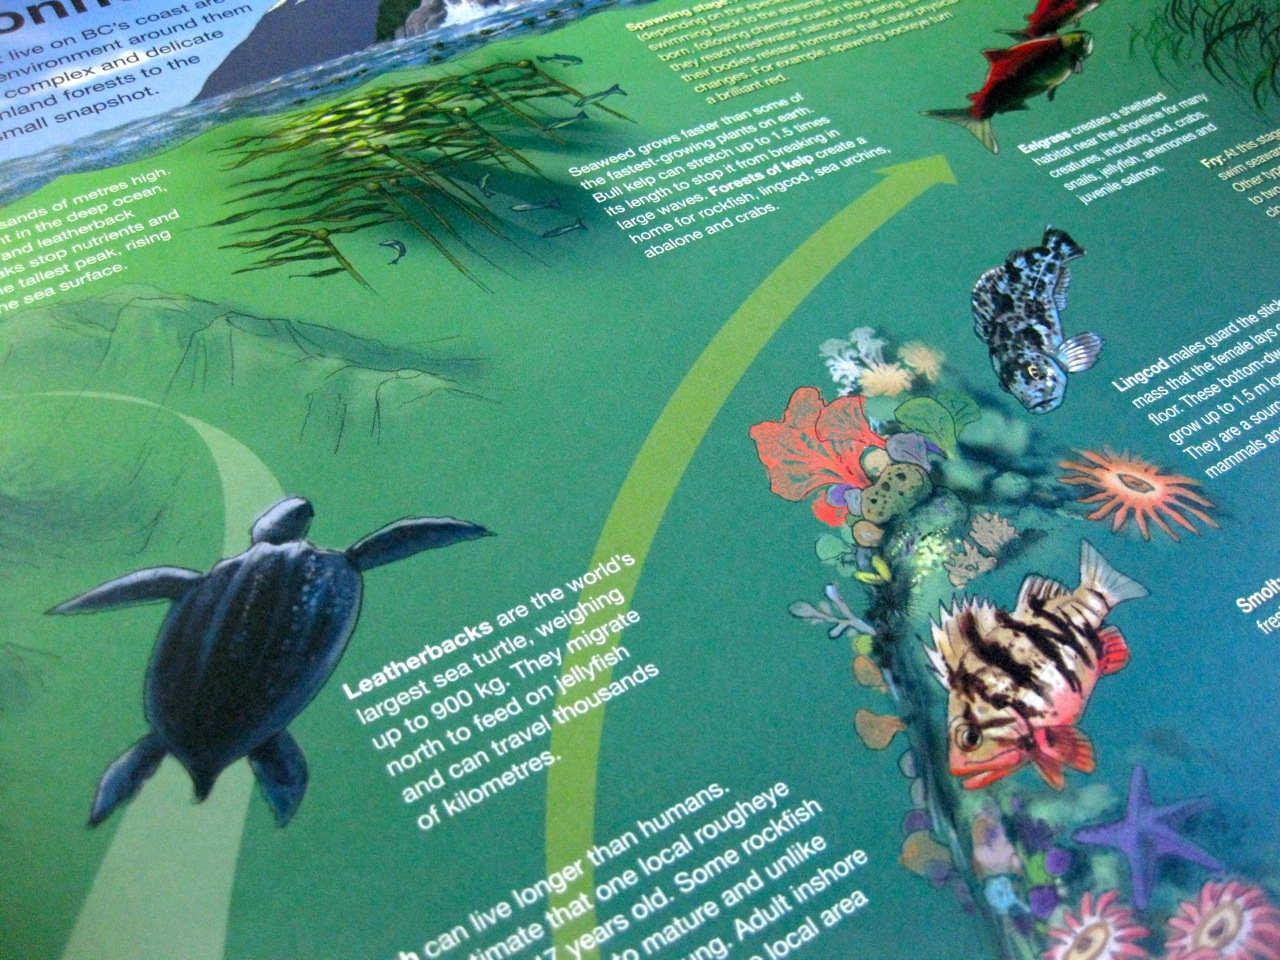 WWF poster detail - leatherback turtle